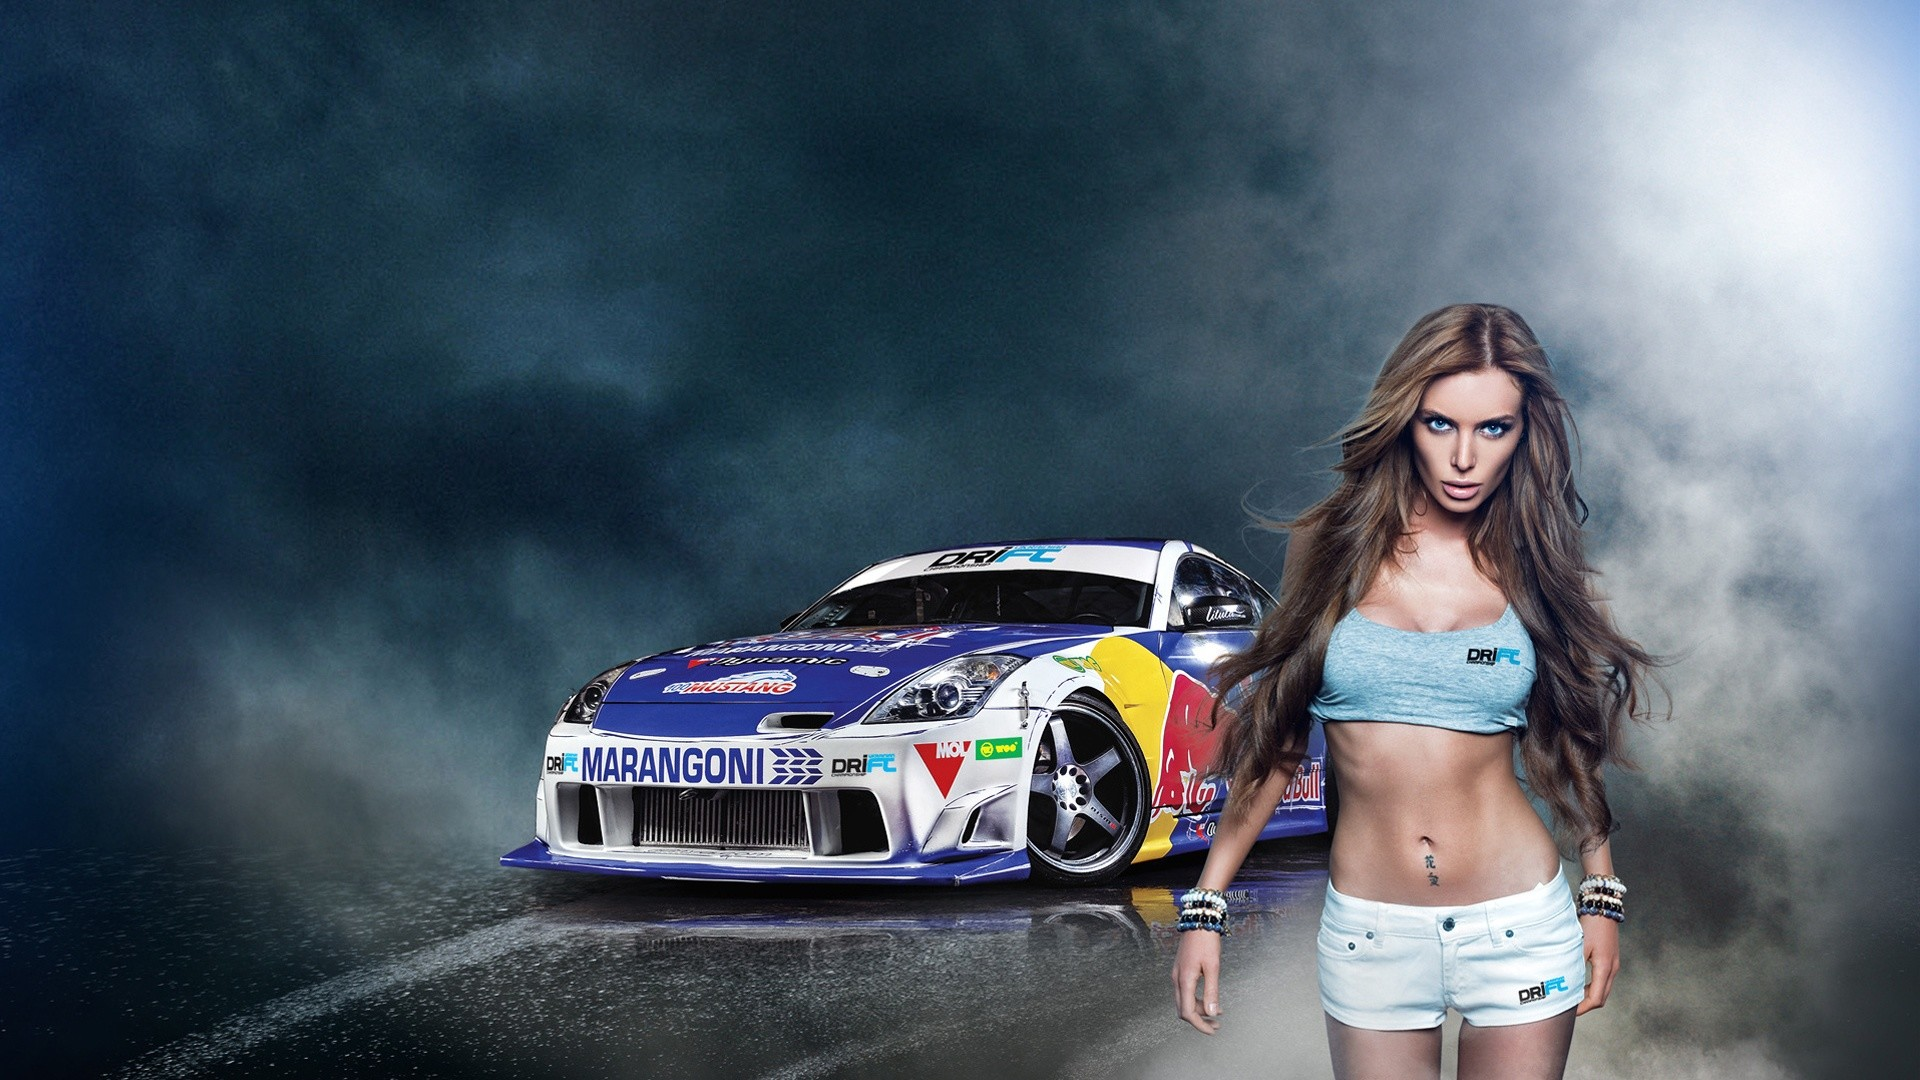 Sexy Cars and Girls Wallpaper and Pictures (11)